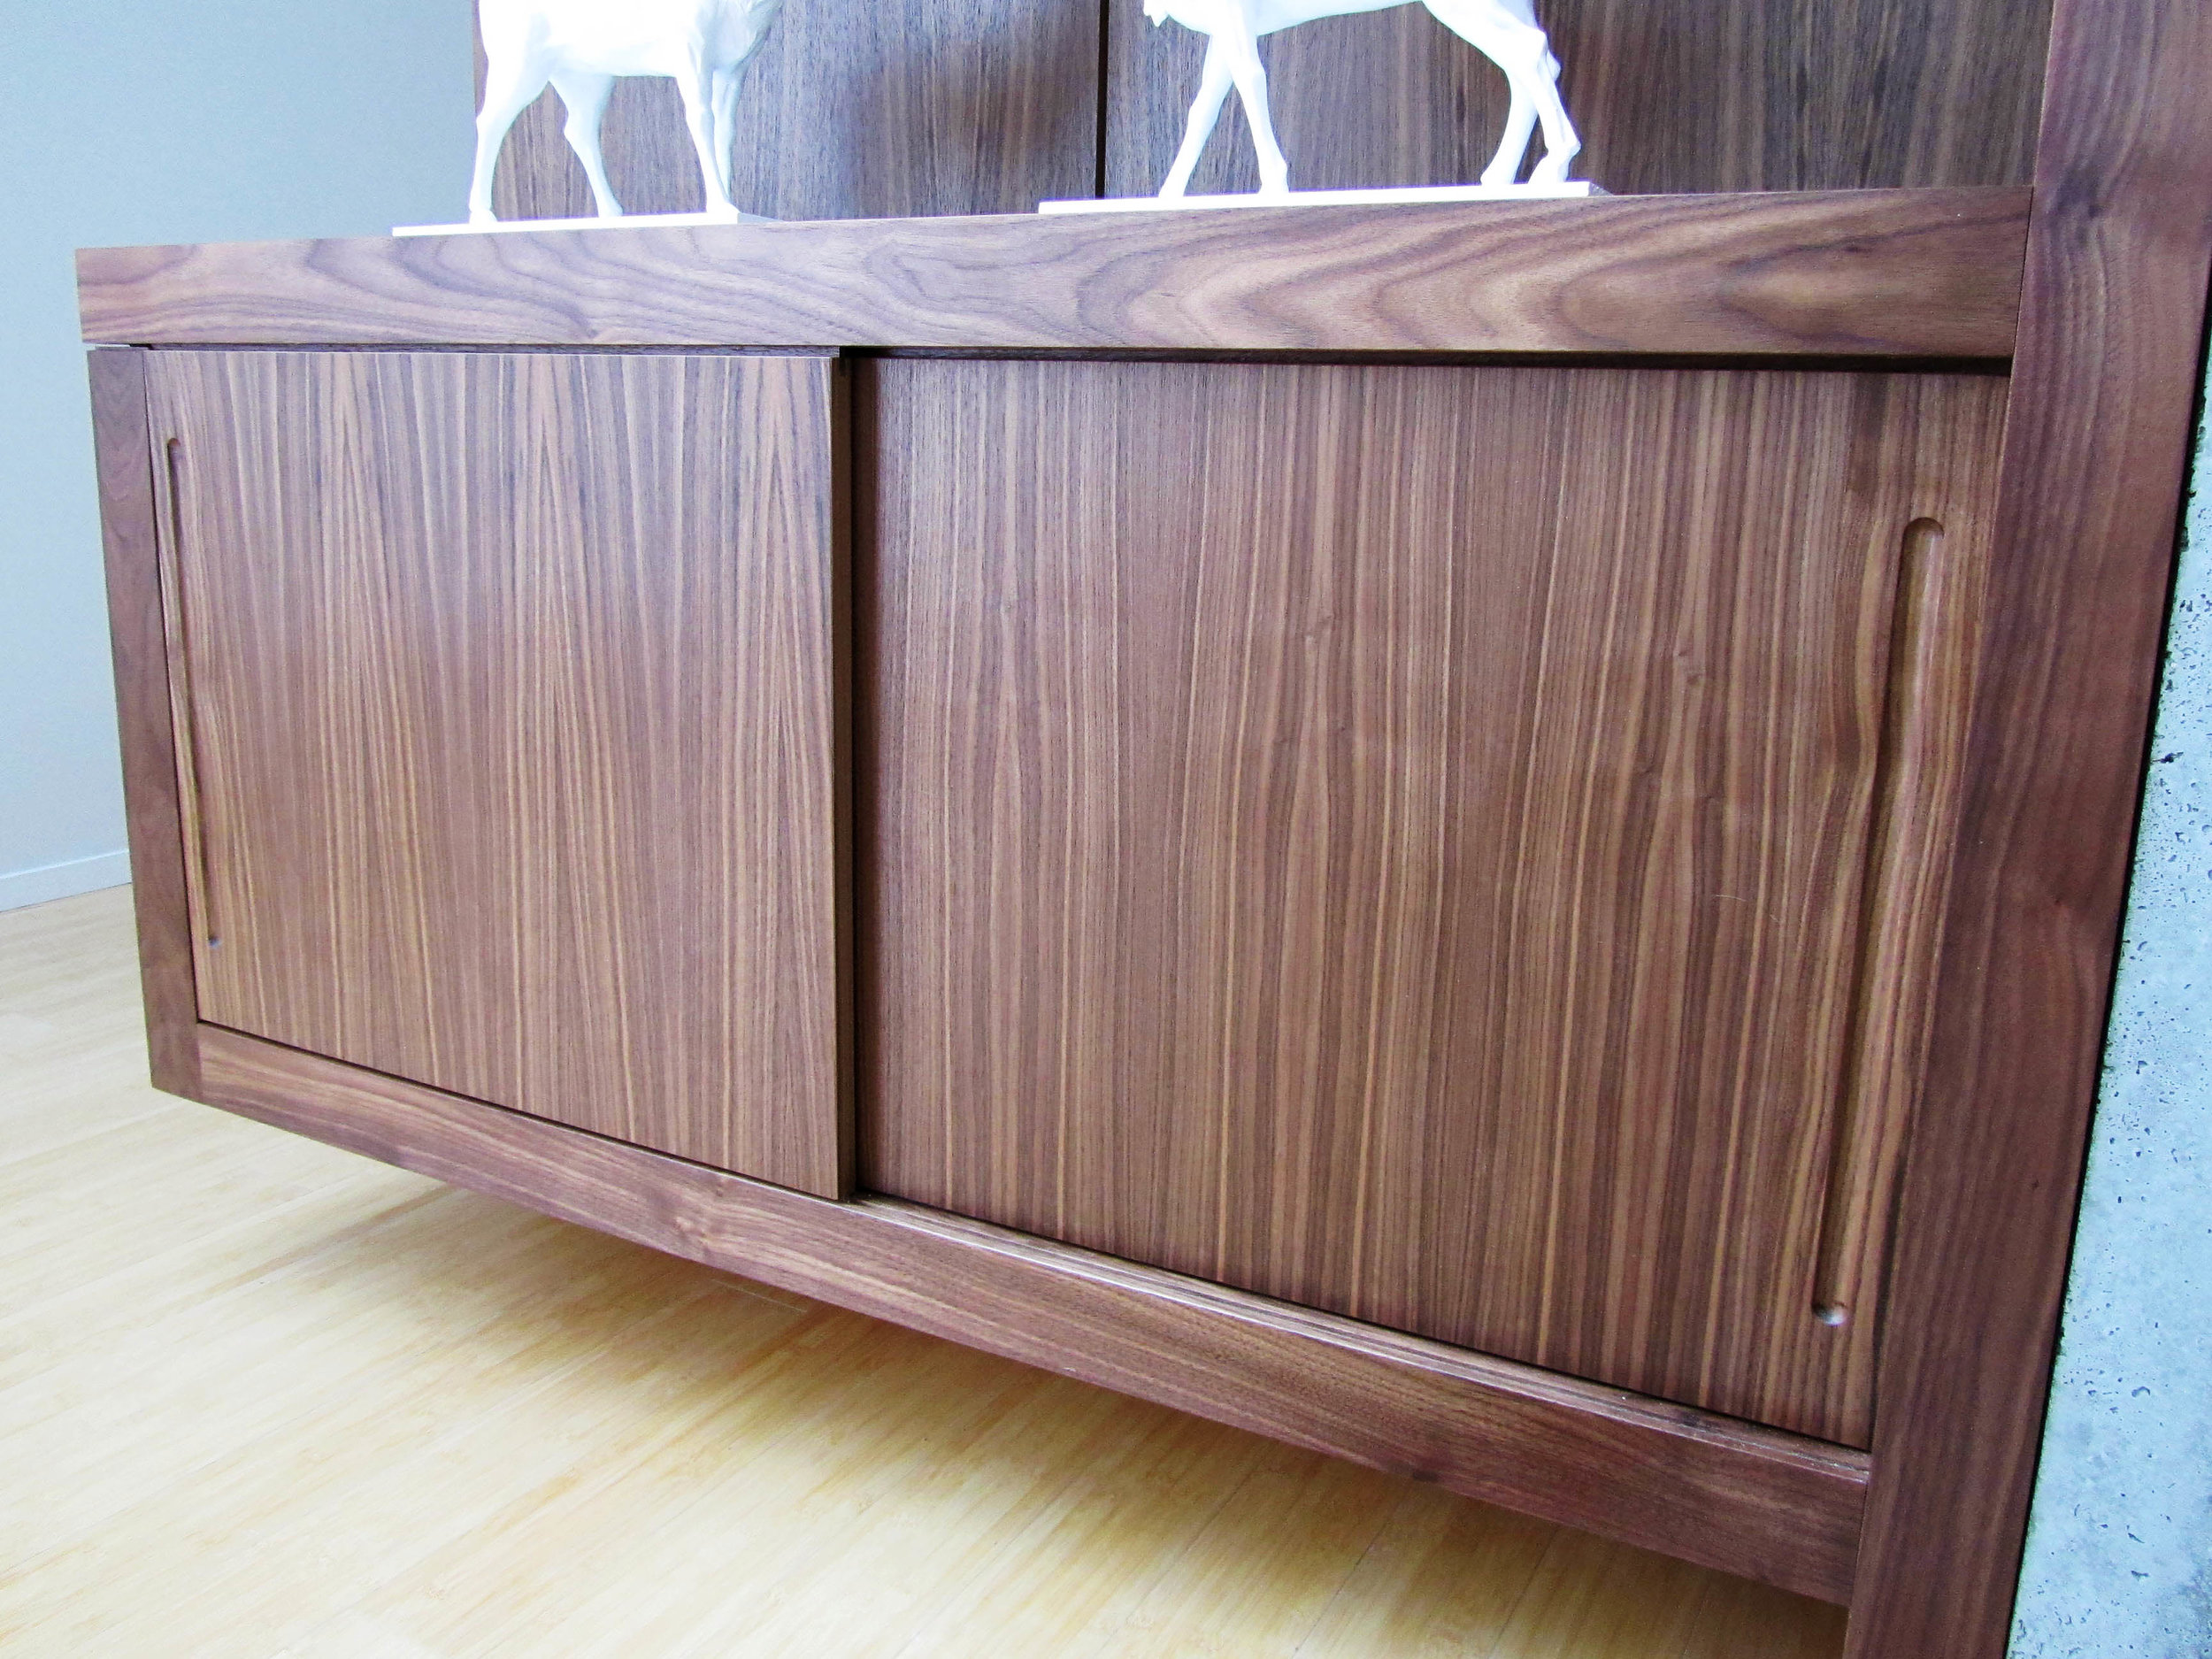 Honore-Cabinetry-custom-modern-walnut-wall-unit-shelves-cabinets-detail1.jpg